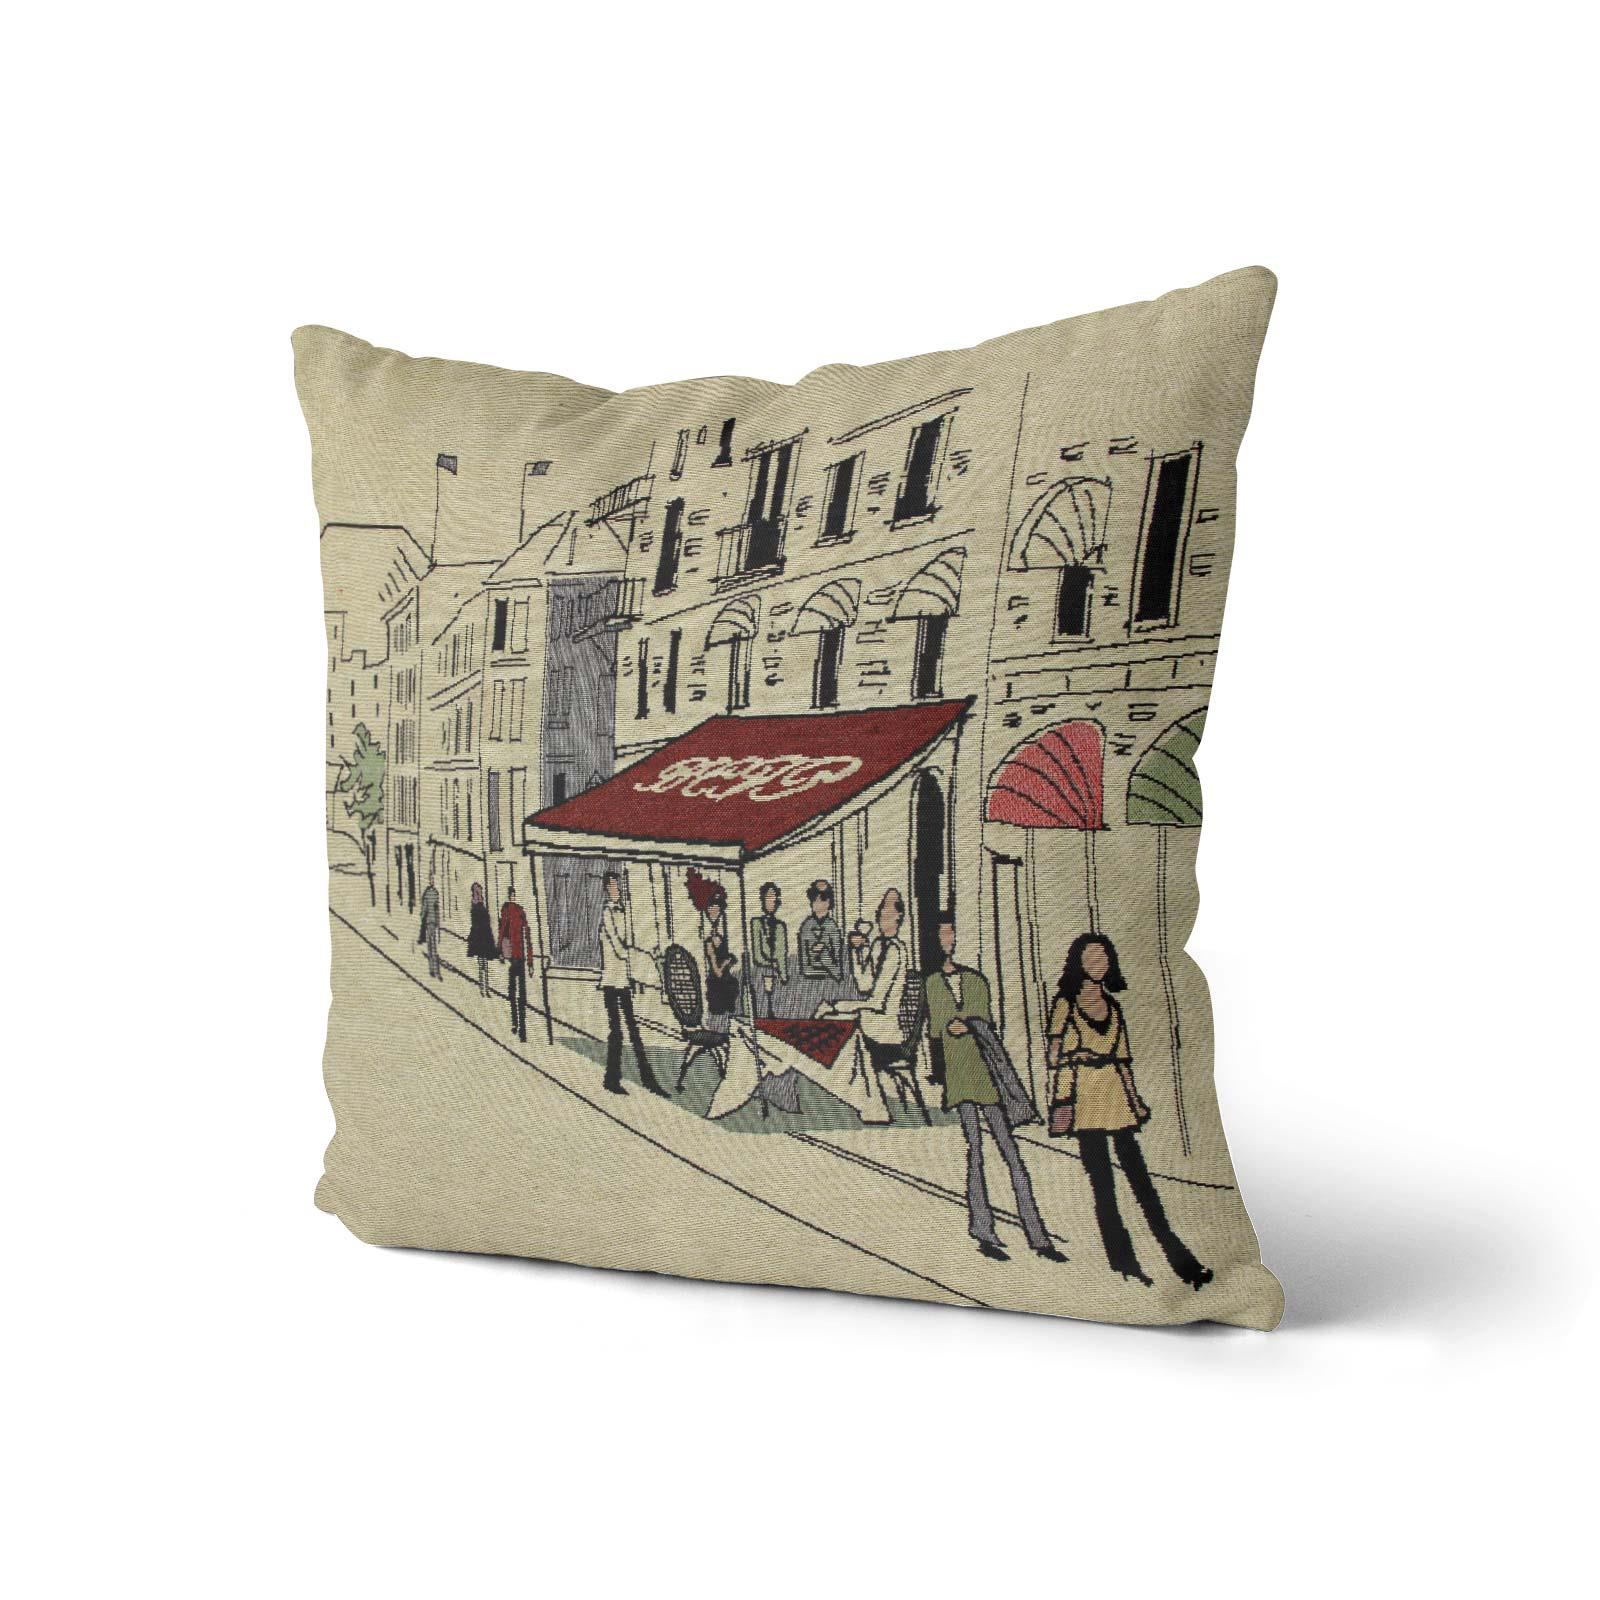 Tapestry-Cushion-Covers-Vintage-Pillow-Cover-Collection-18-034-45cm-Filled-Cushions thumbnail 201